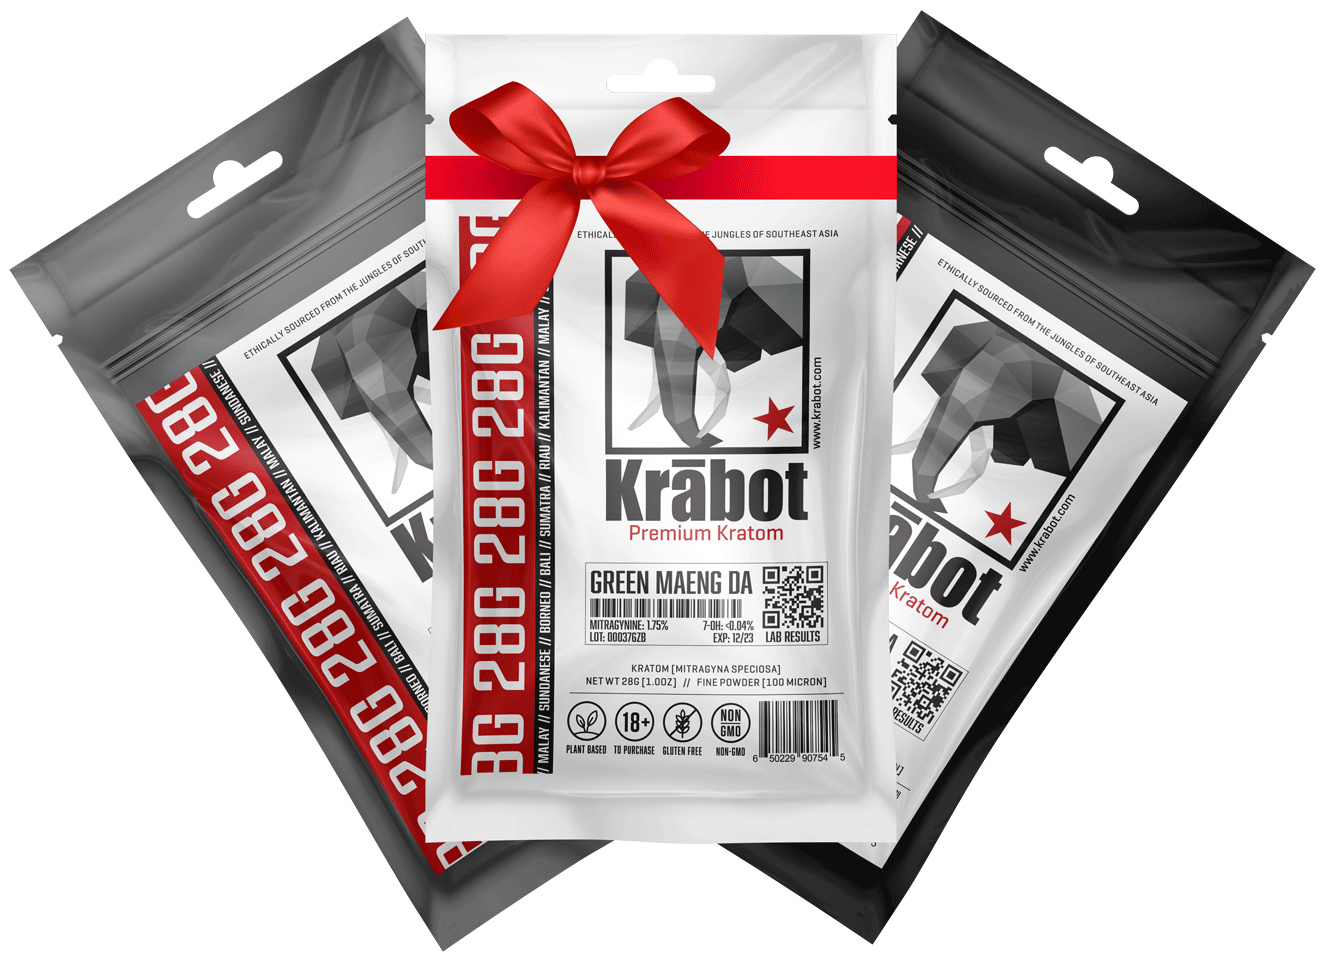 Krabot Rewards